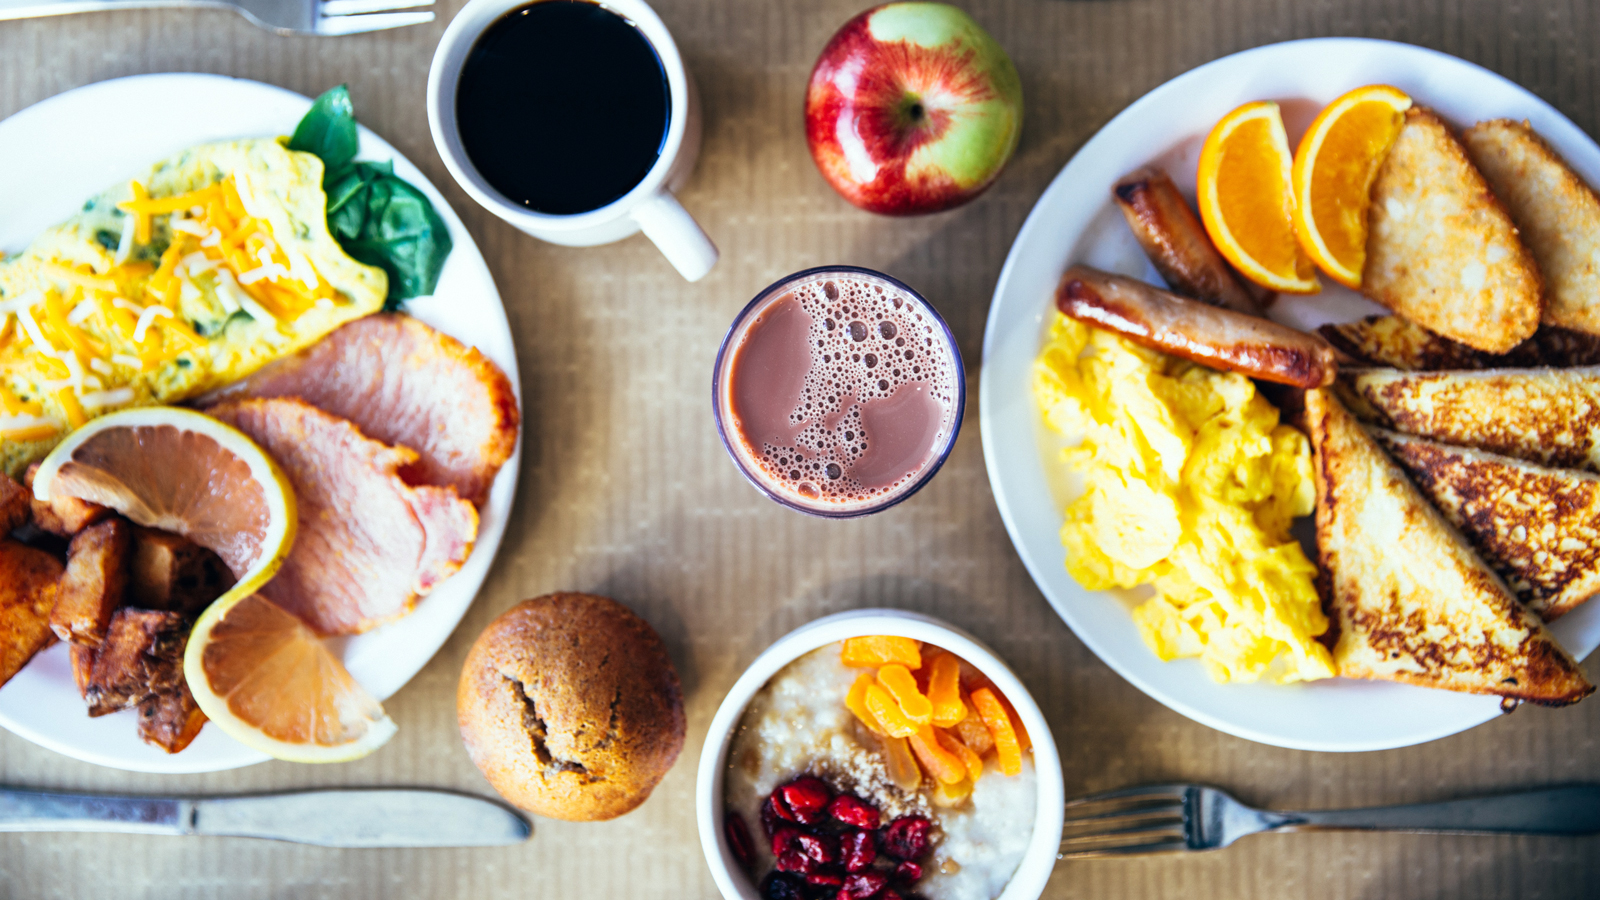 If these healthy foods are part of your breakfast, you could lose years of your life